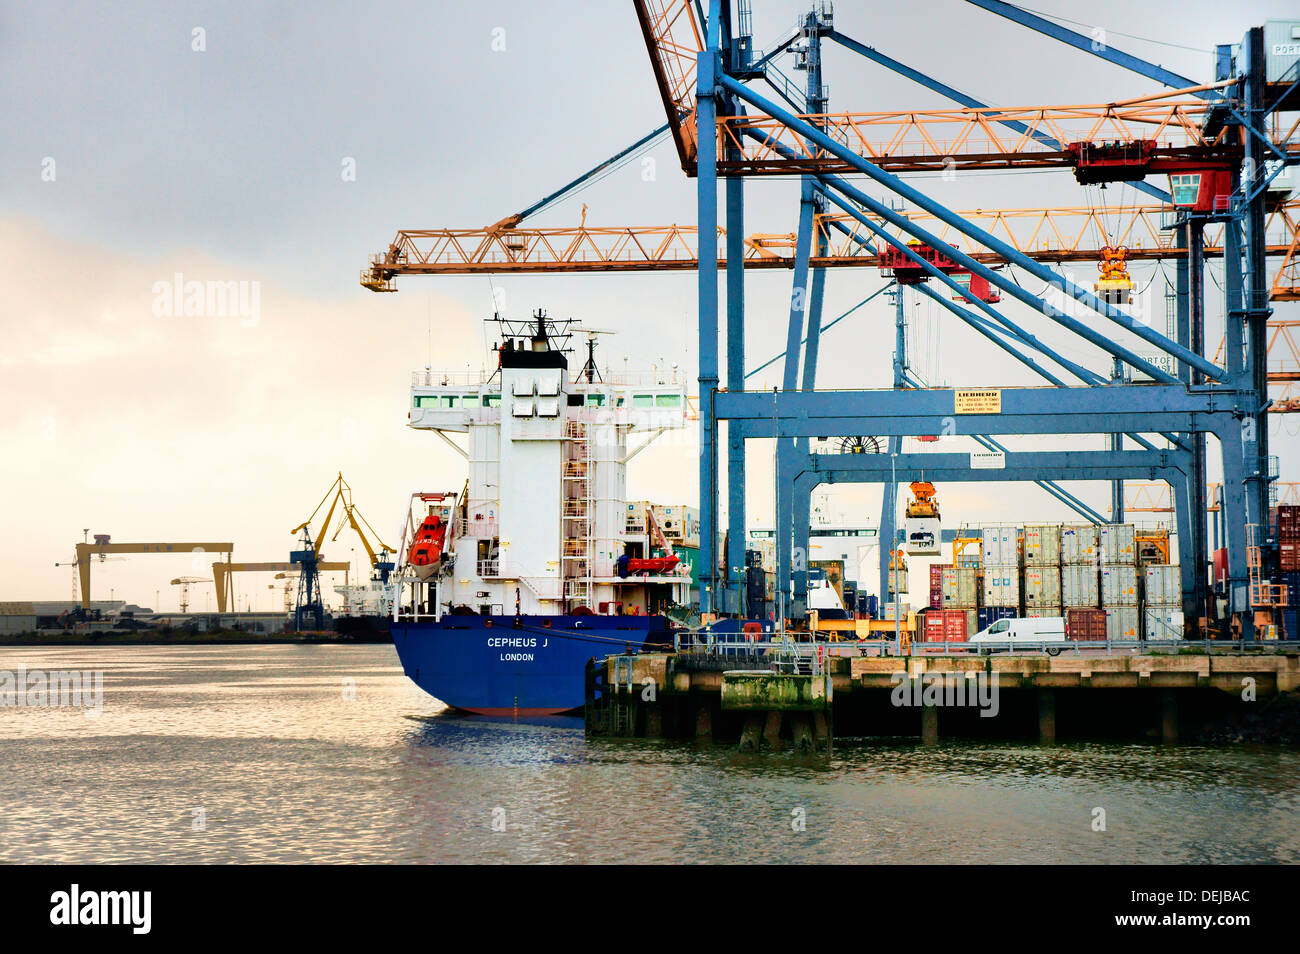 Belfast Harbour, Port of Belfast, Northern Ireland. Container ship dock facility on west bank with Harland and Wolff in distance - Stock Image